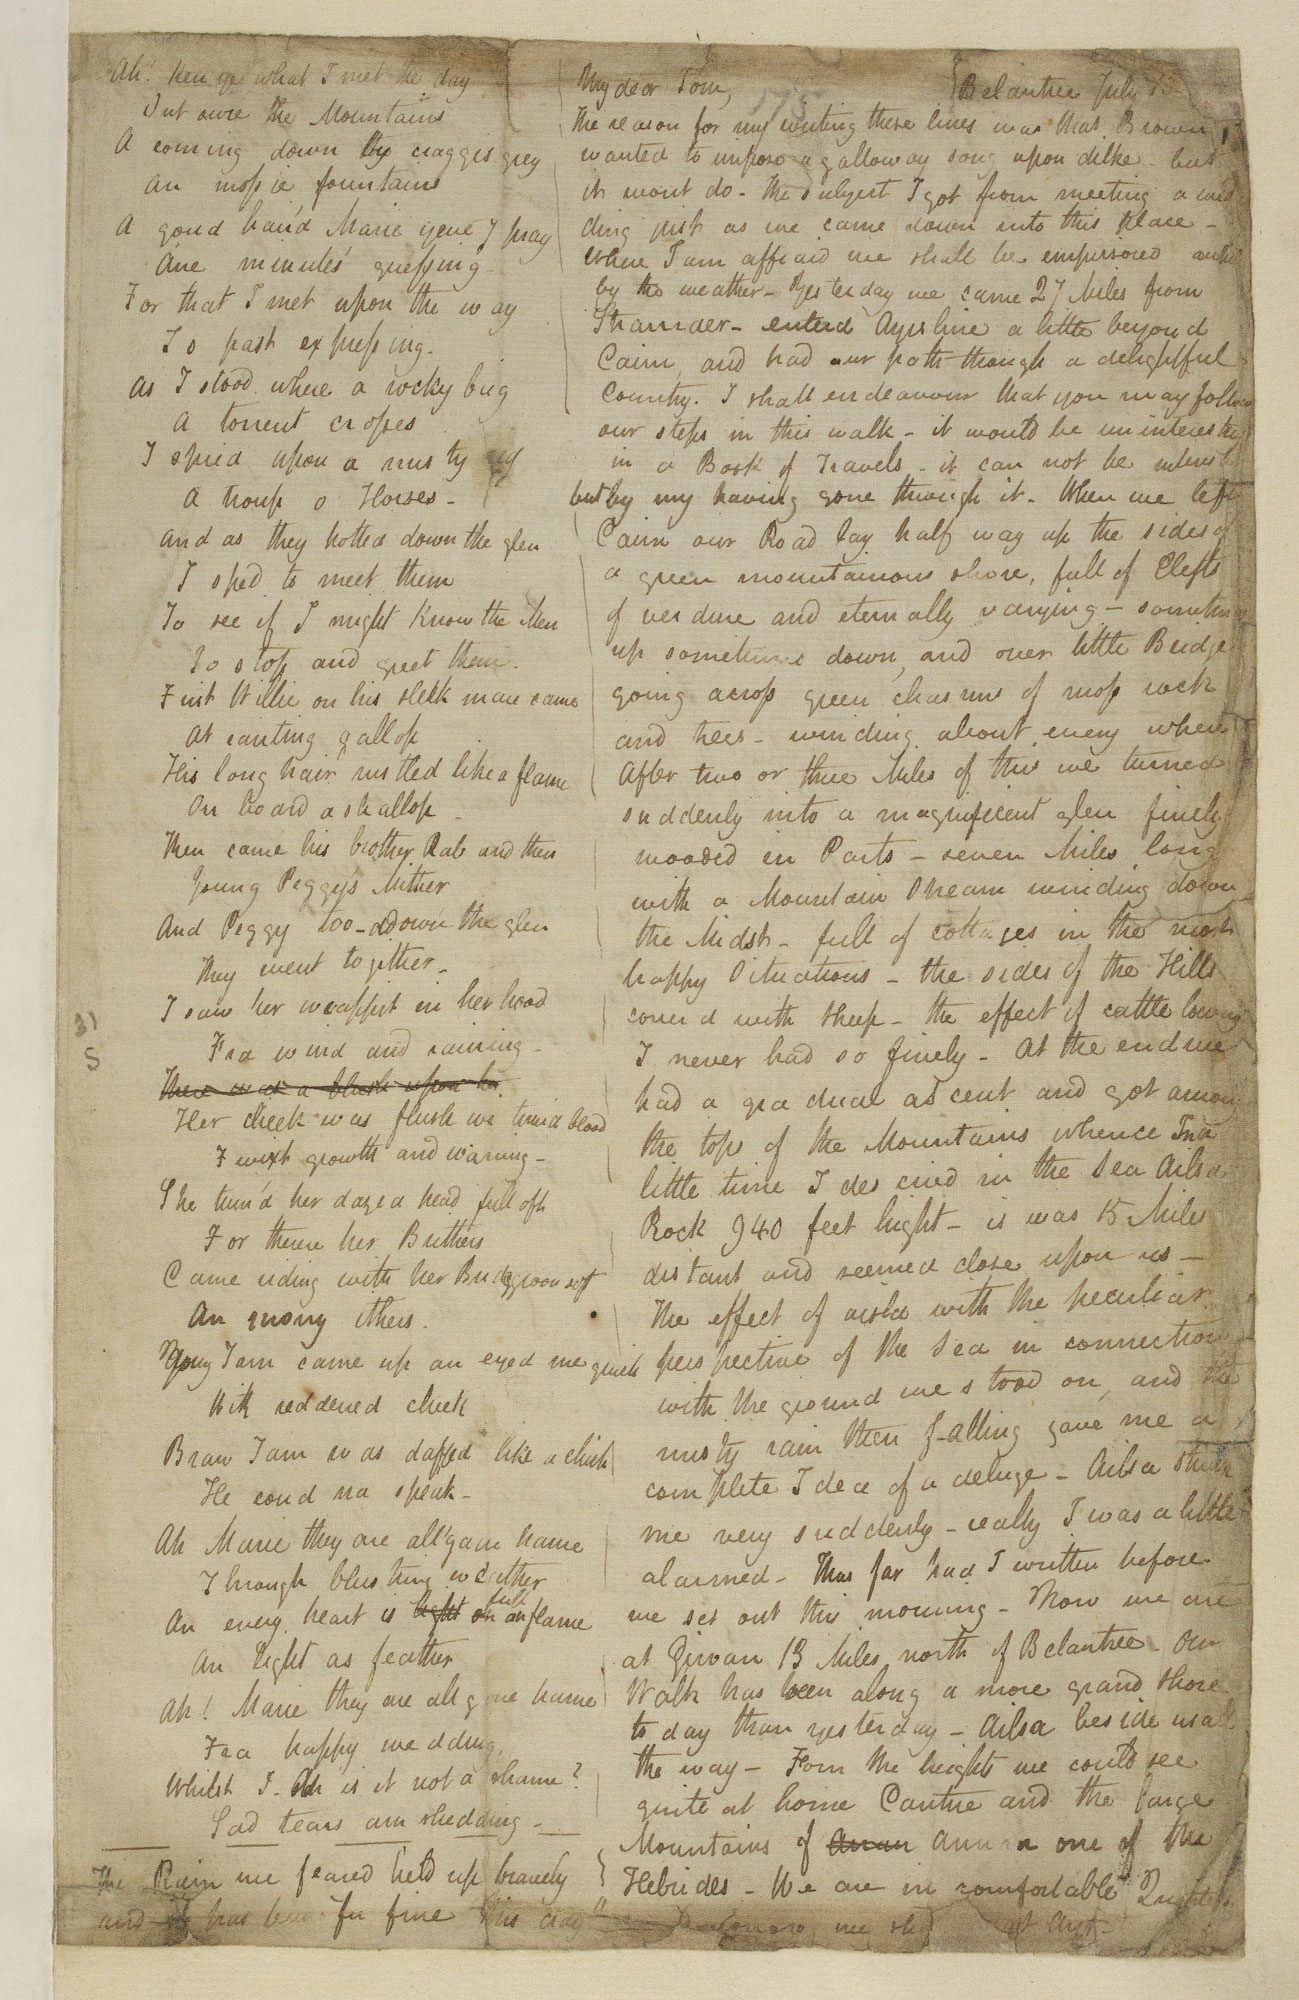 Letter from John Keats to his brother during his walking tour of Scotland